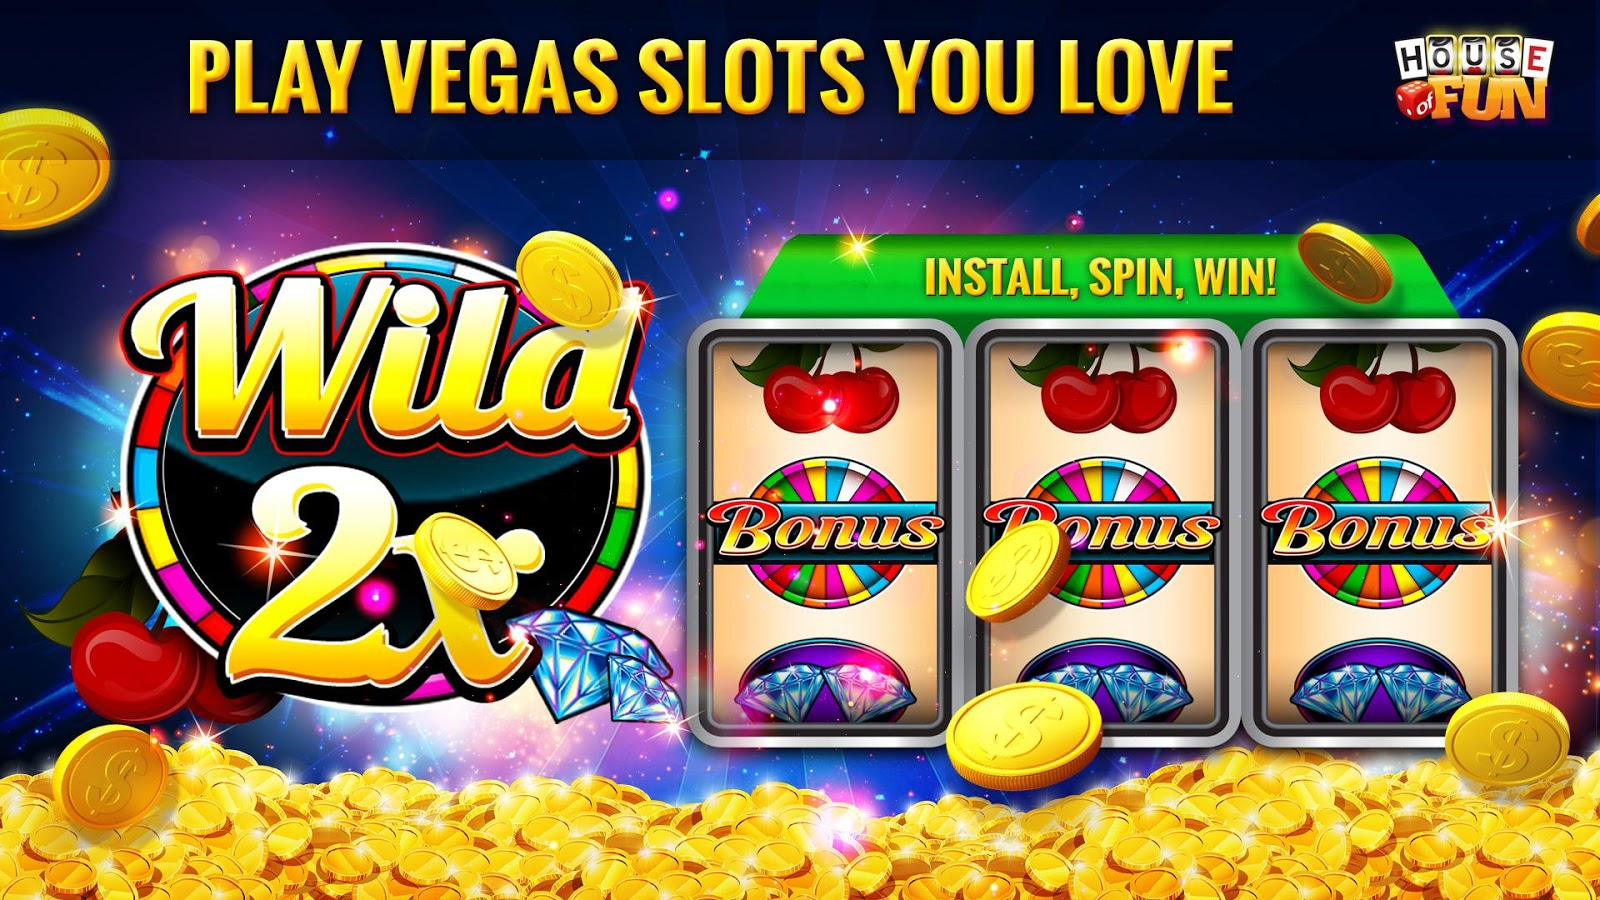 House of Fun-Free Casino Slots Screenshot 8